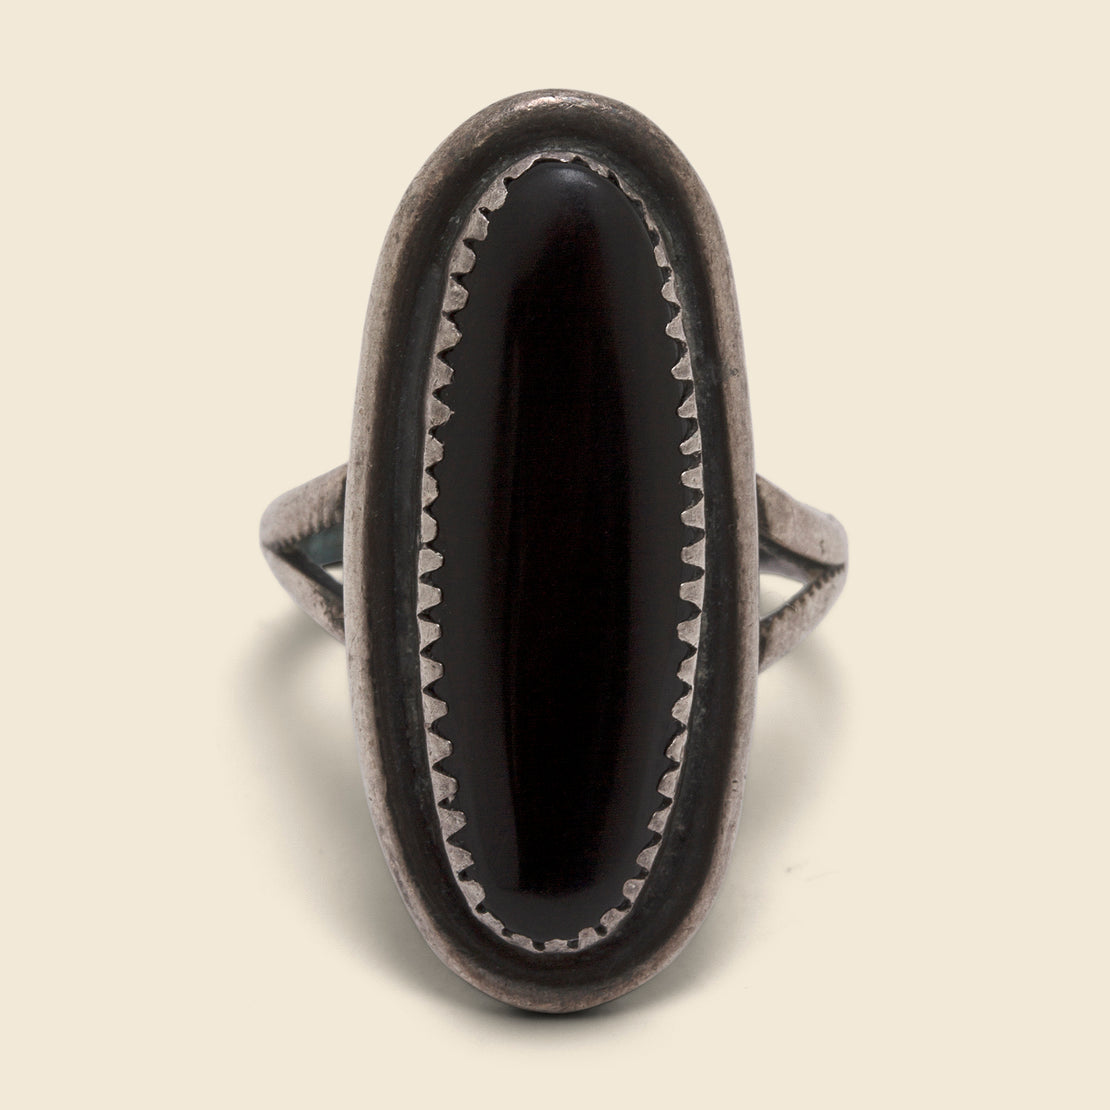 Oval Onyx Ring - Silver